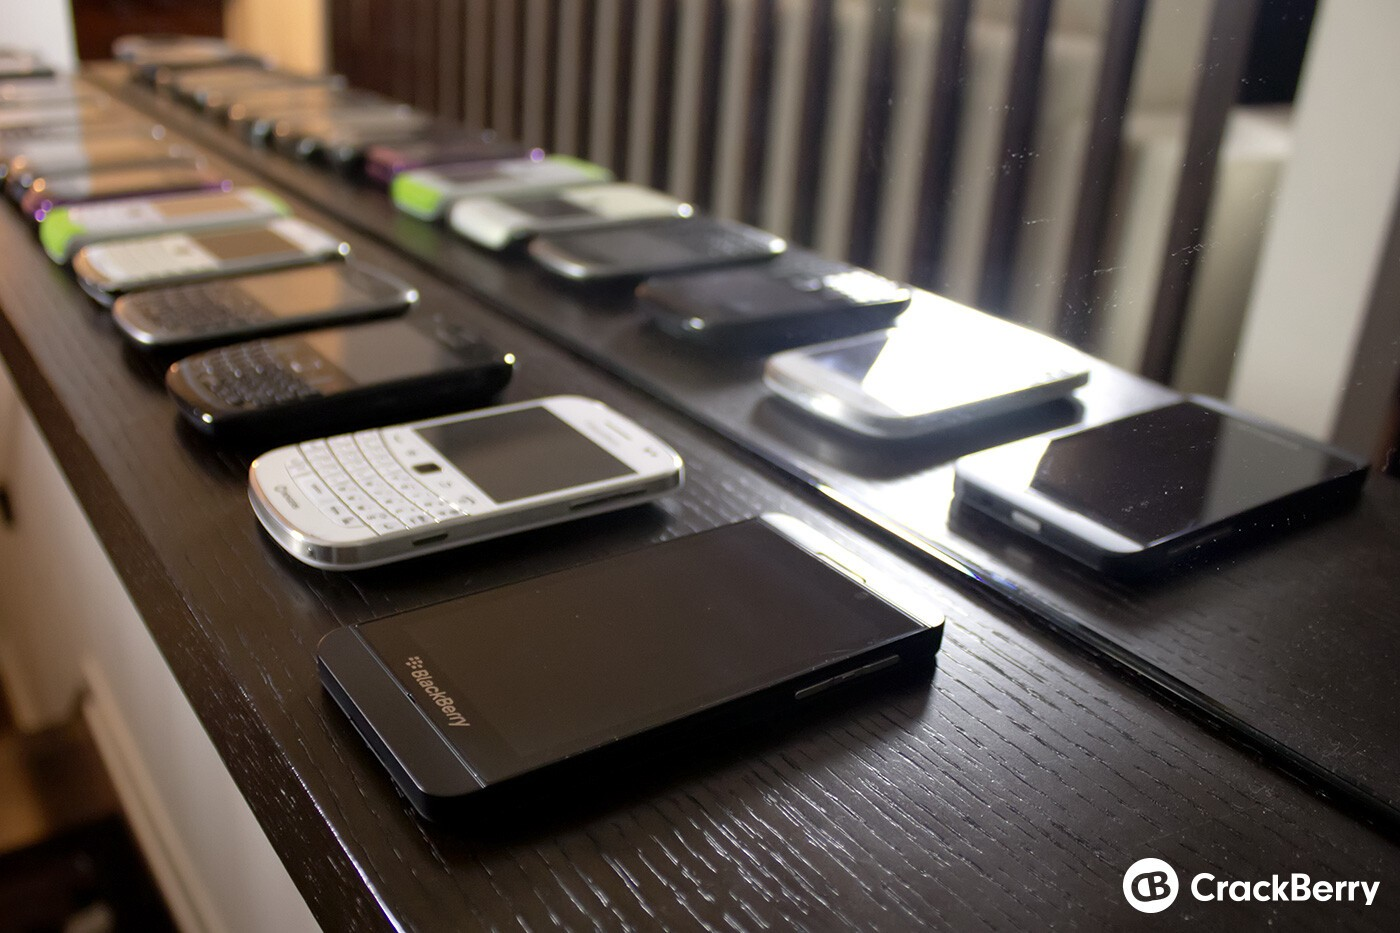 The BlackBerry Z10 follows a long line of previous BlackBerry devices